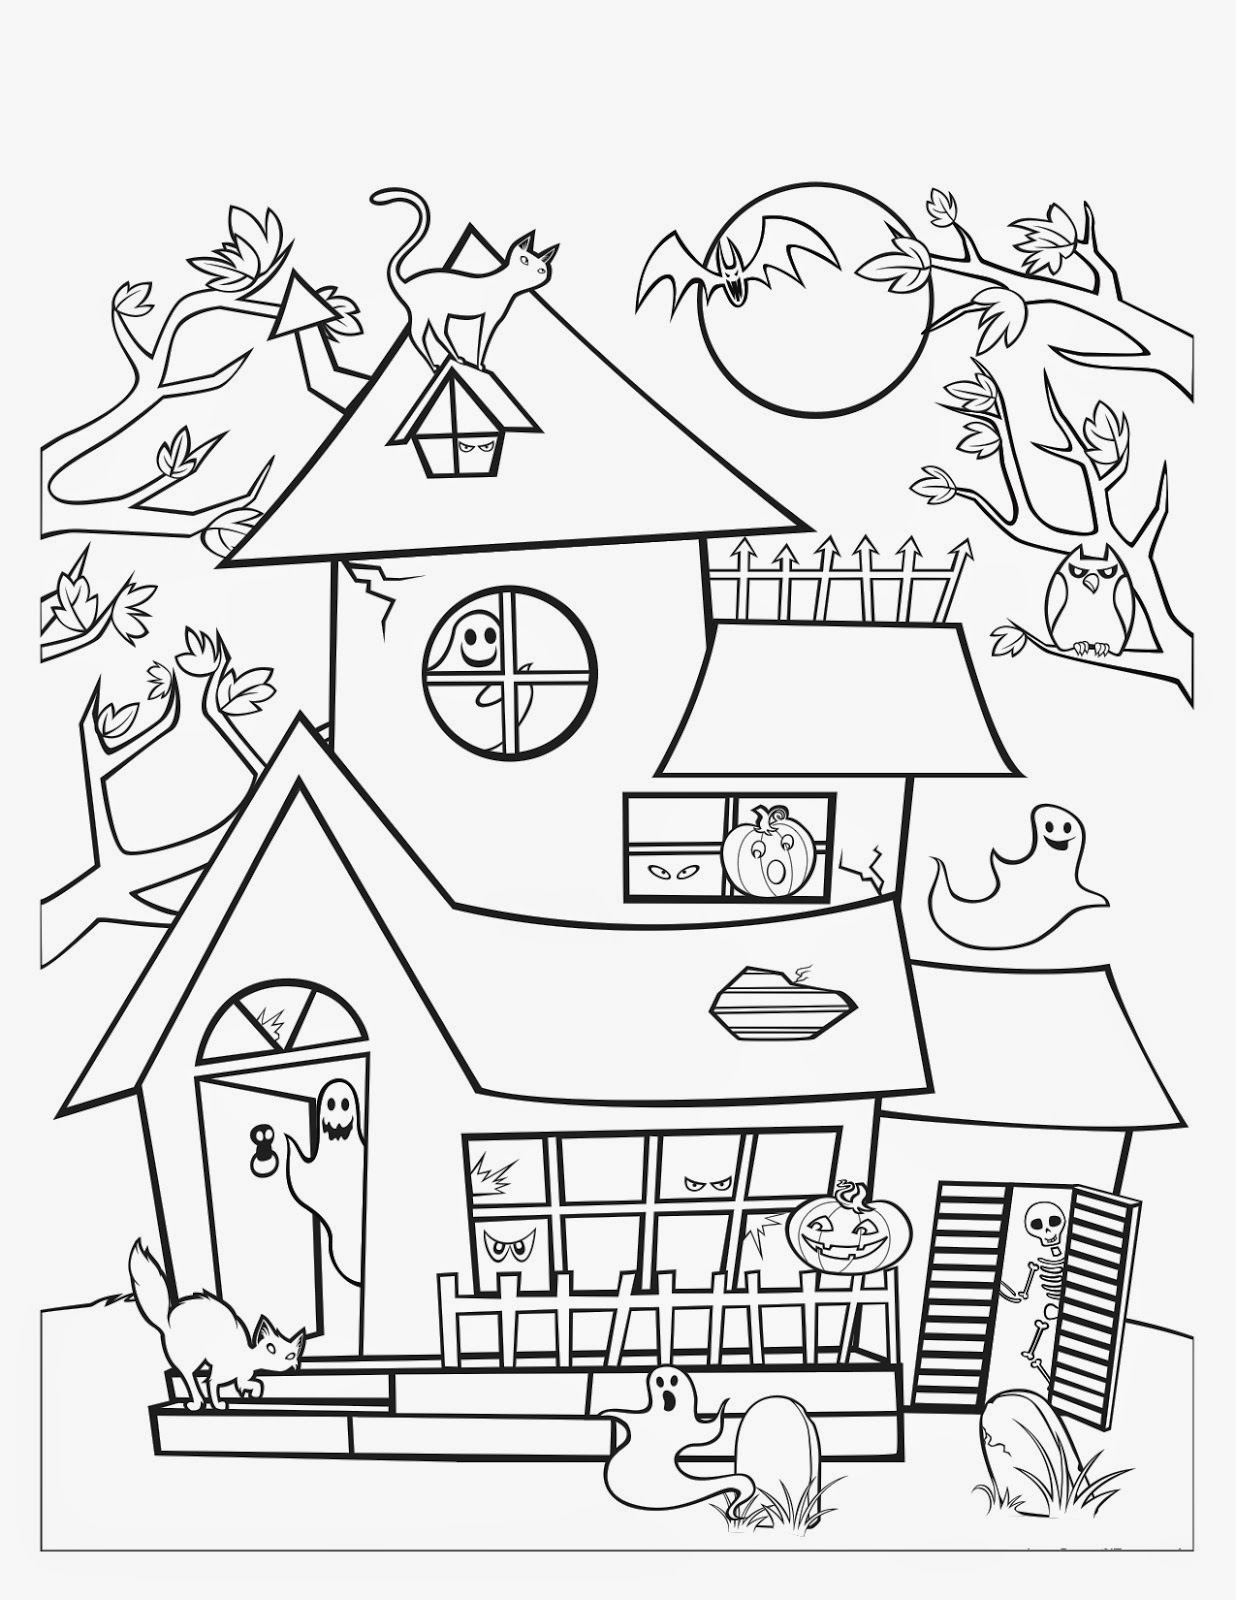 simple haunted house coloring pages easy haunted house drawing at getdrawings free download simple haunted pages house coloring